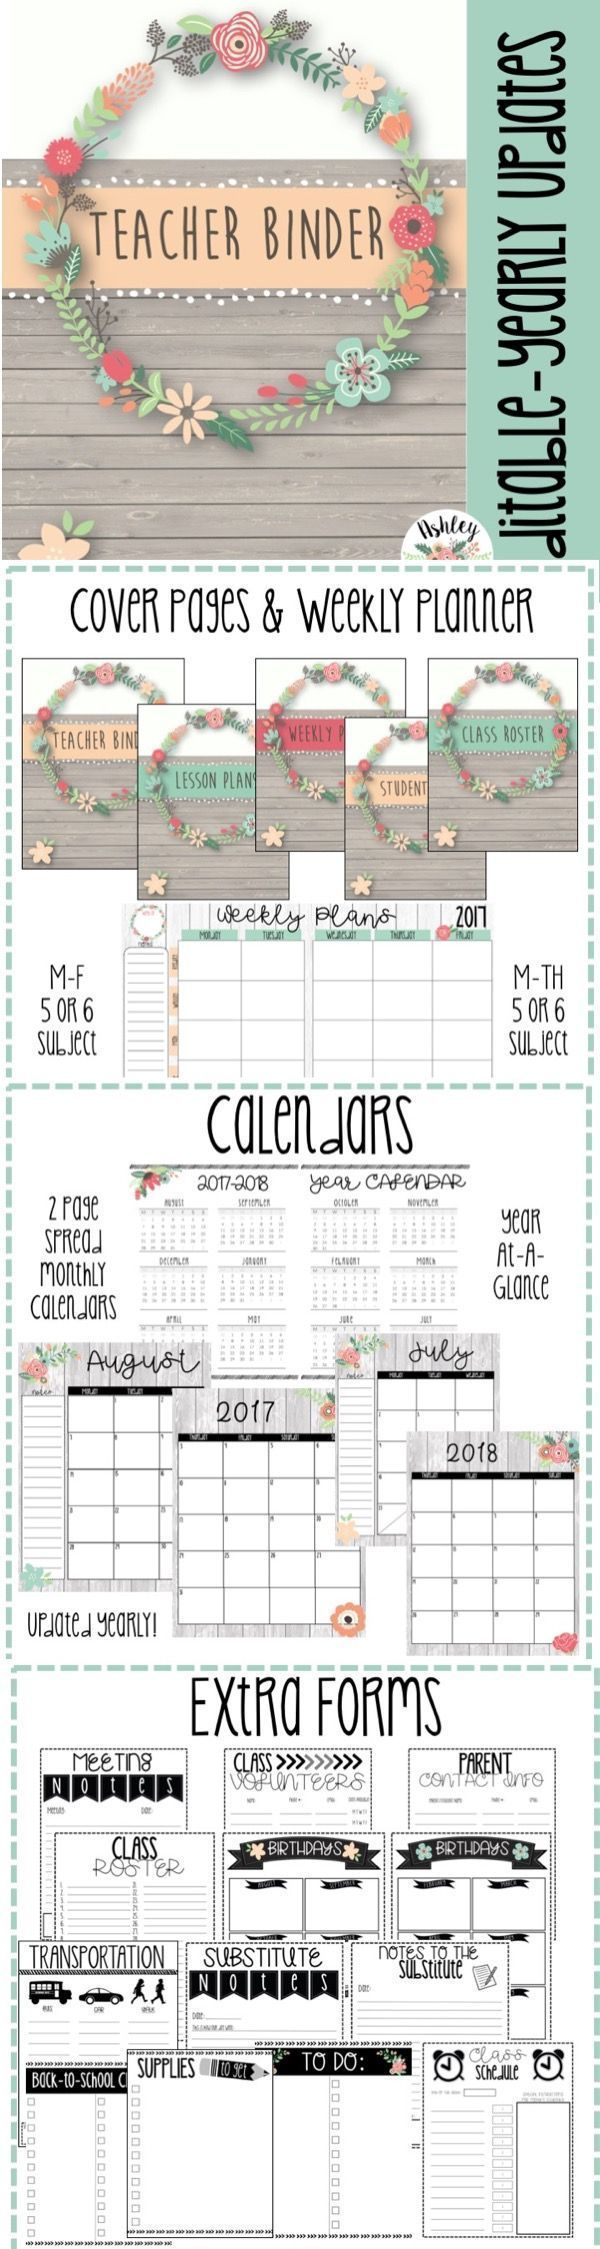 Editable Floral Themed Teacher Binder & Planner Pack! Over 100 pages of editable beauty to help keep teachers organized!